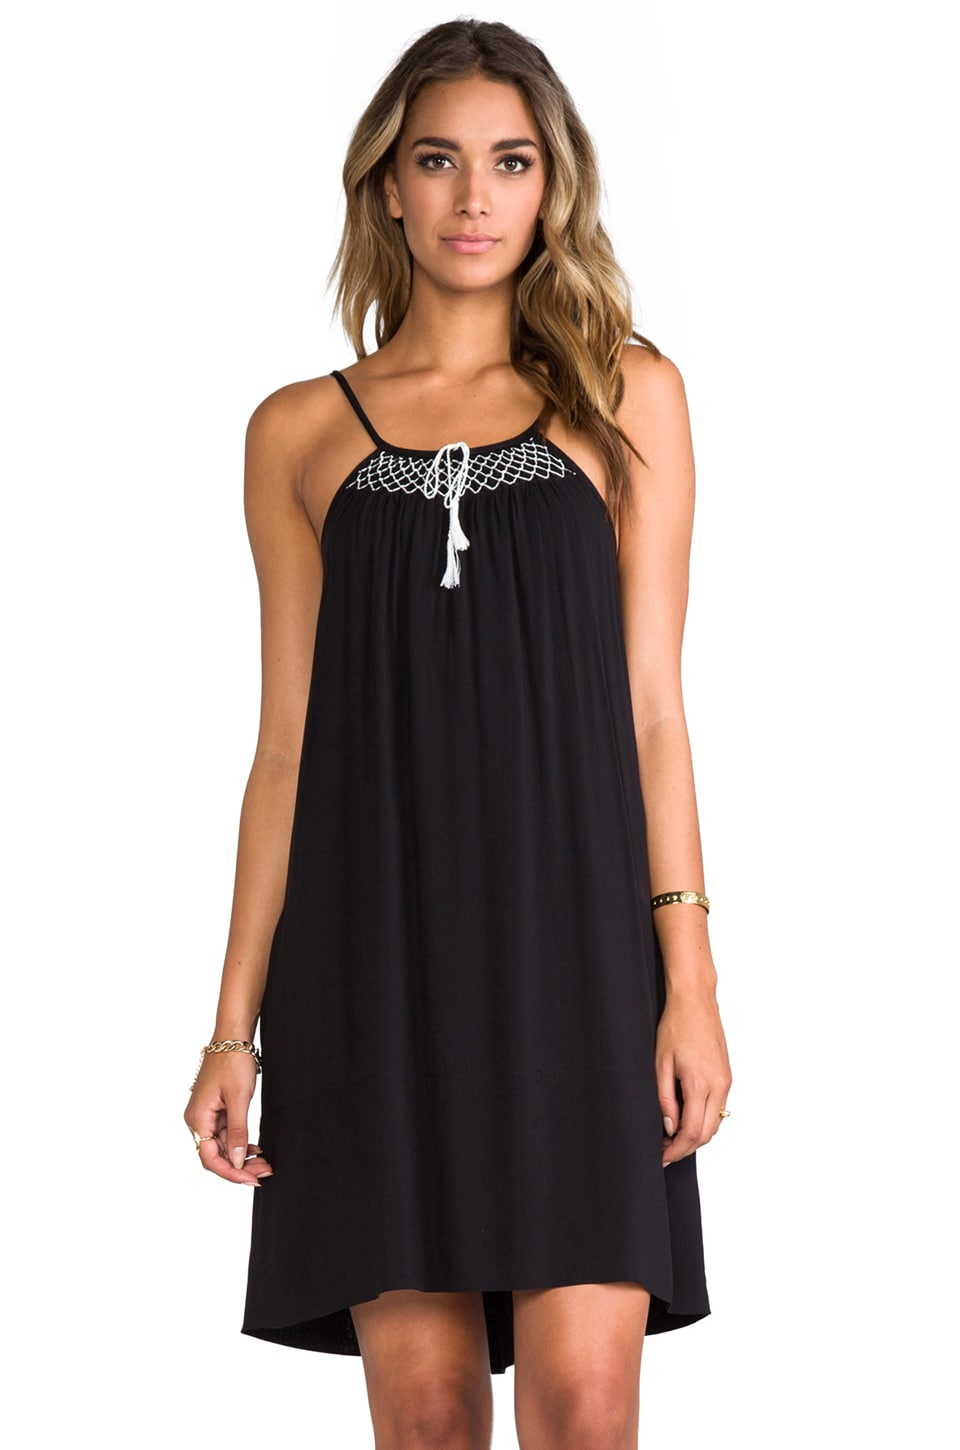 Flannel Australia Flannel Amore Singlet Dress in Black